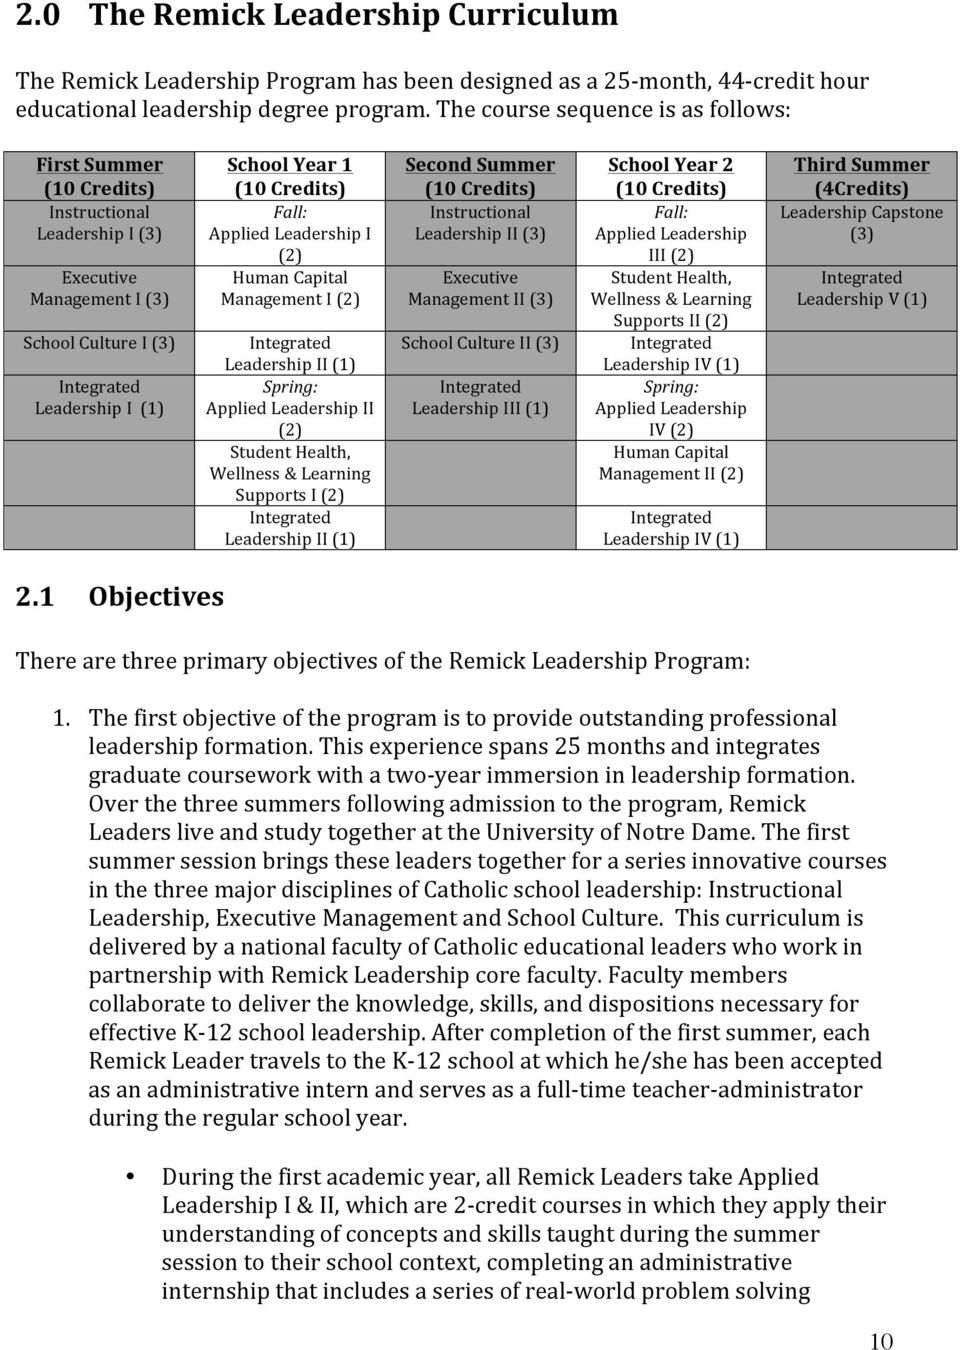 Fall: Applied Leadership I (2) Human Capital Management I (2) Integrated Leadership II (1) Spring: Applied Leadership II (2) Student Health, Wellness & Learning Supports I (2) Integrated Leadership